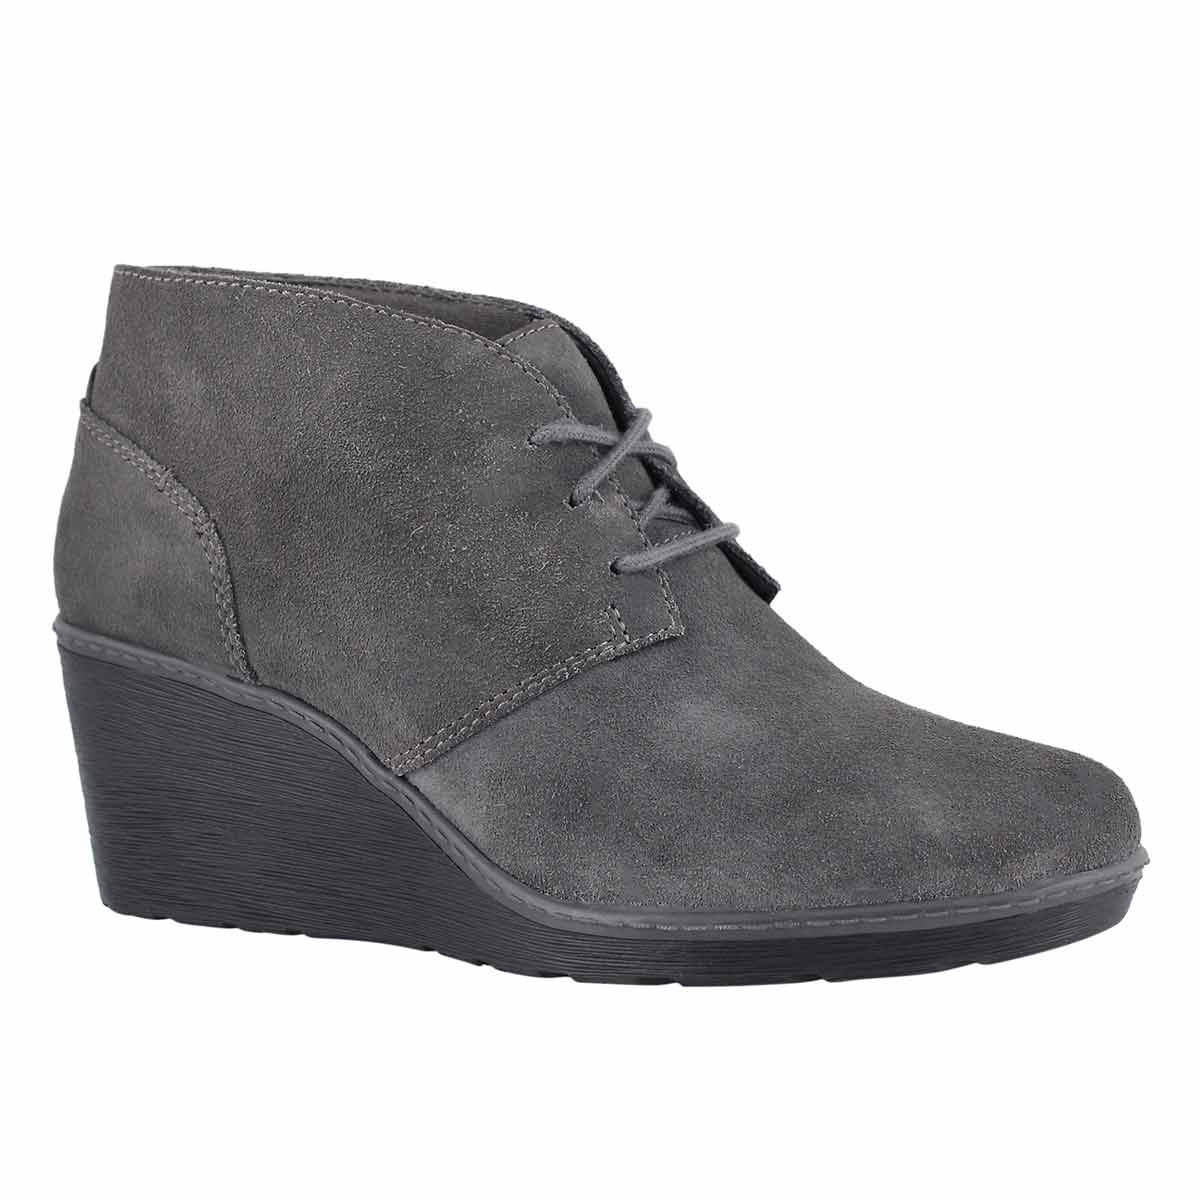 Lds Hazen Charm grey lace up wedge boot